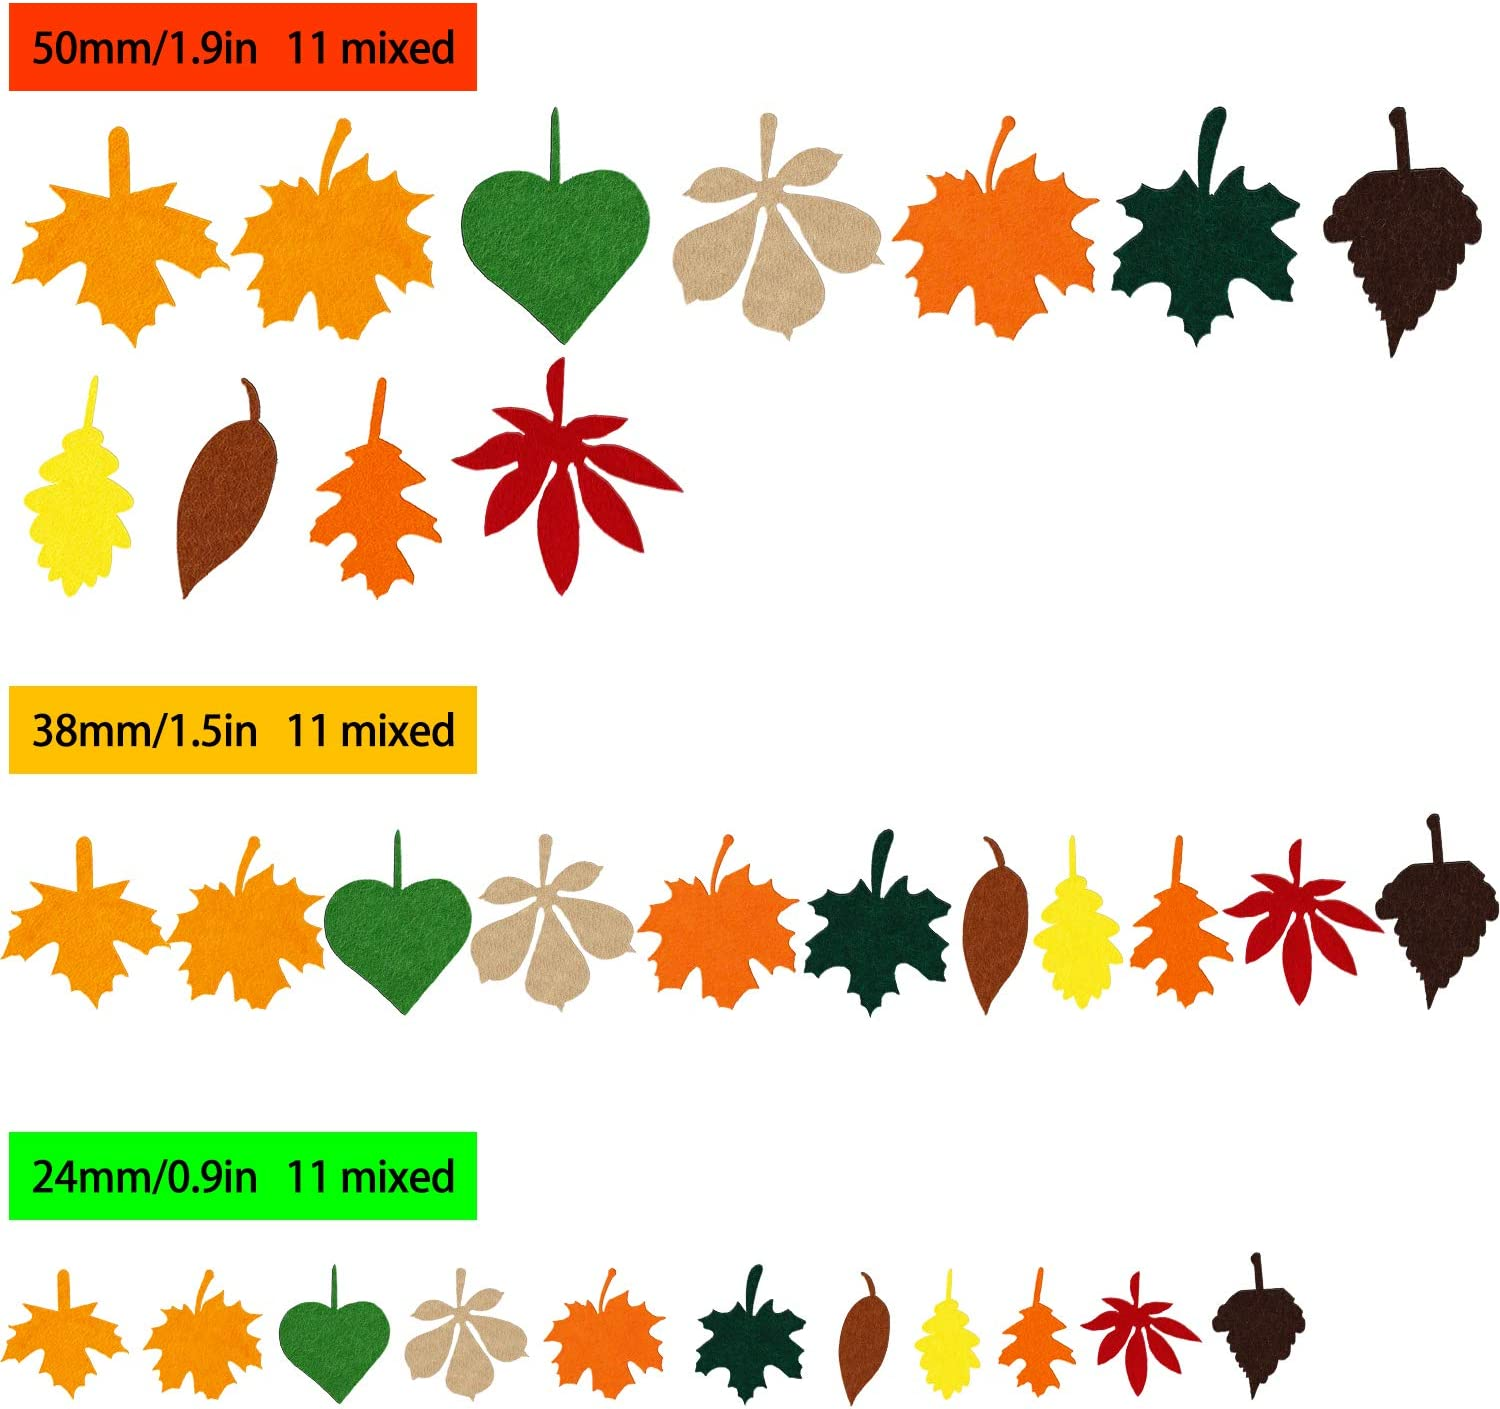 528 Pieces Leaf Stickers Felt Leaf Fall Stickers Maple Leaf Decals Assorted Autumn Leaf Decorations for Thanksgiving Party Craft Ornaments